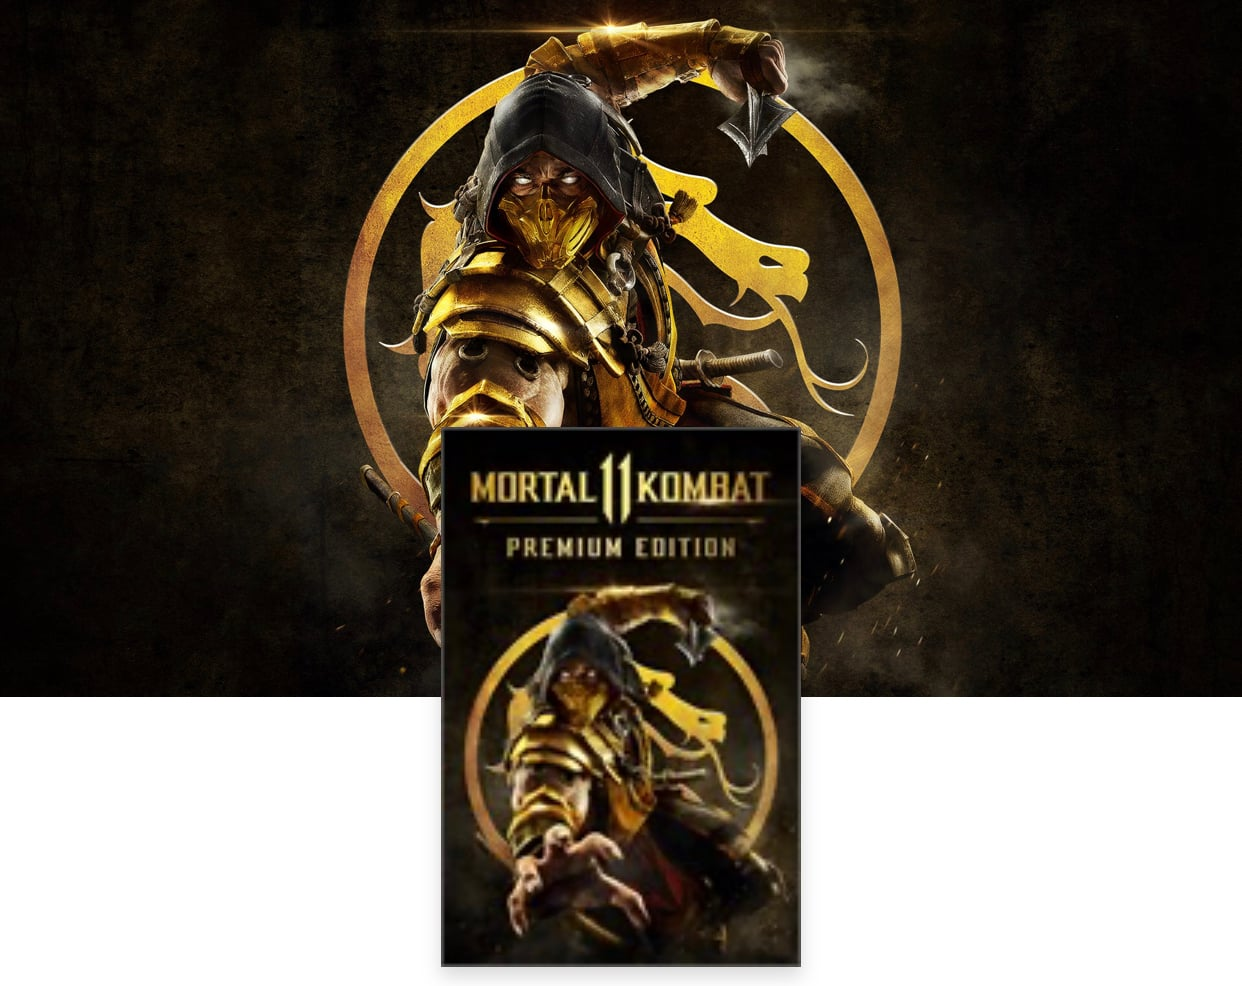 Mortal Kombat 11 Premium Edition Digital on Xbox Live and Microsoft Store $29.96. Normally $99.99